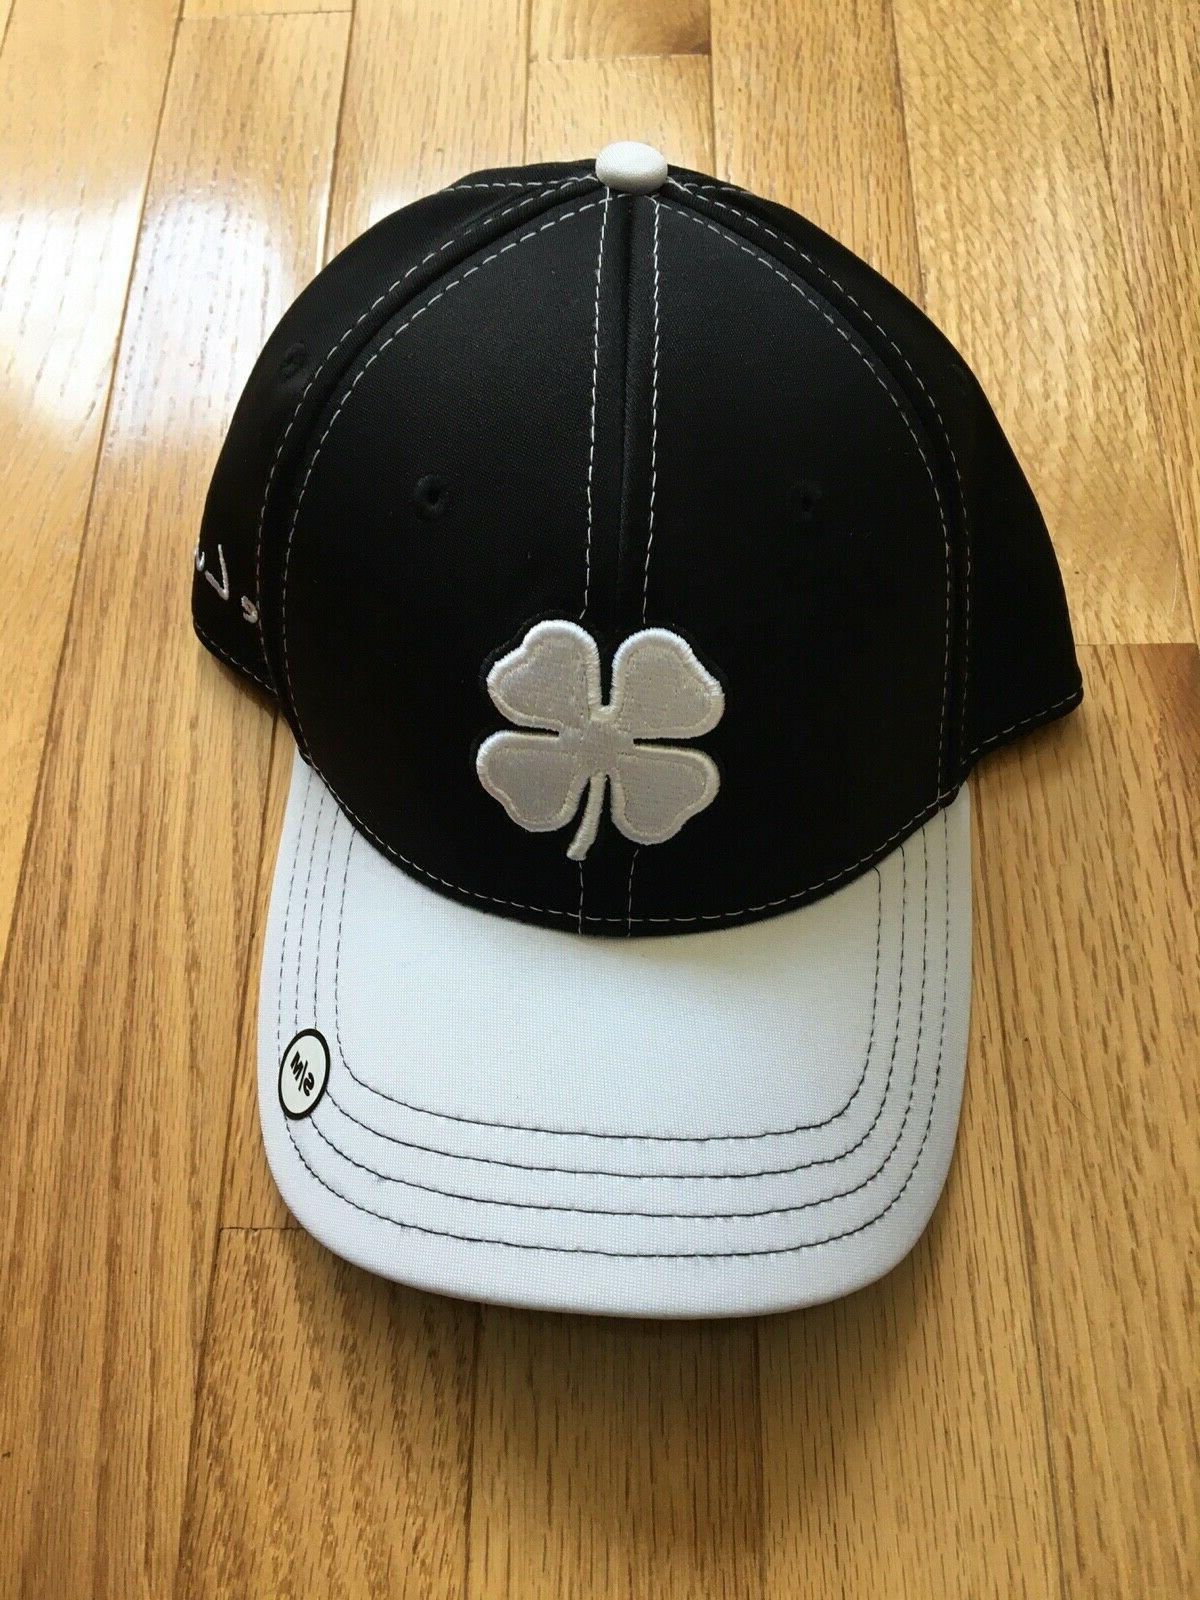 live lucky fitted golf hat baseball cap